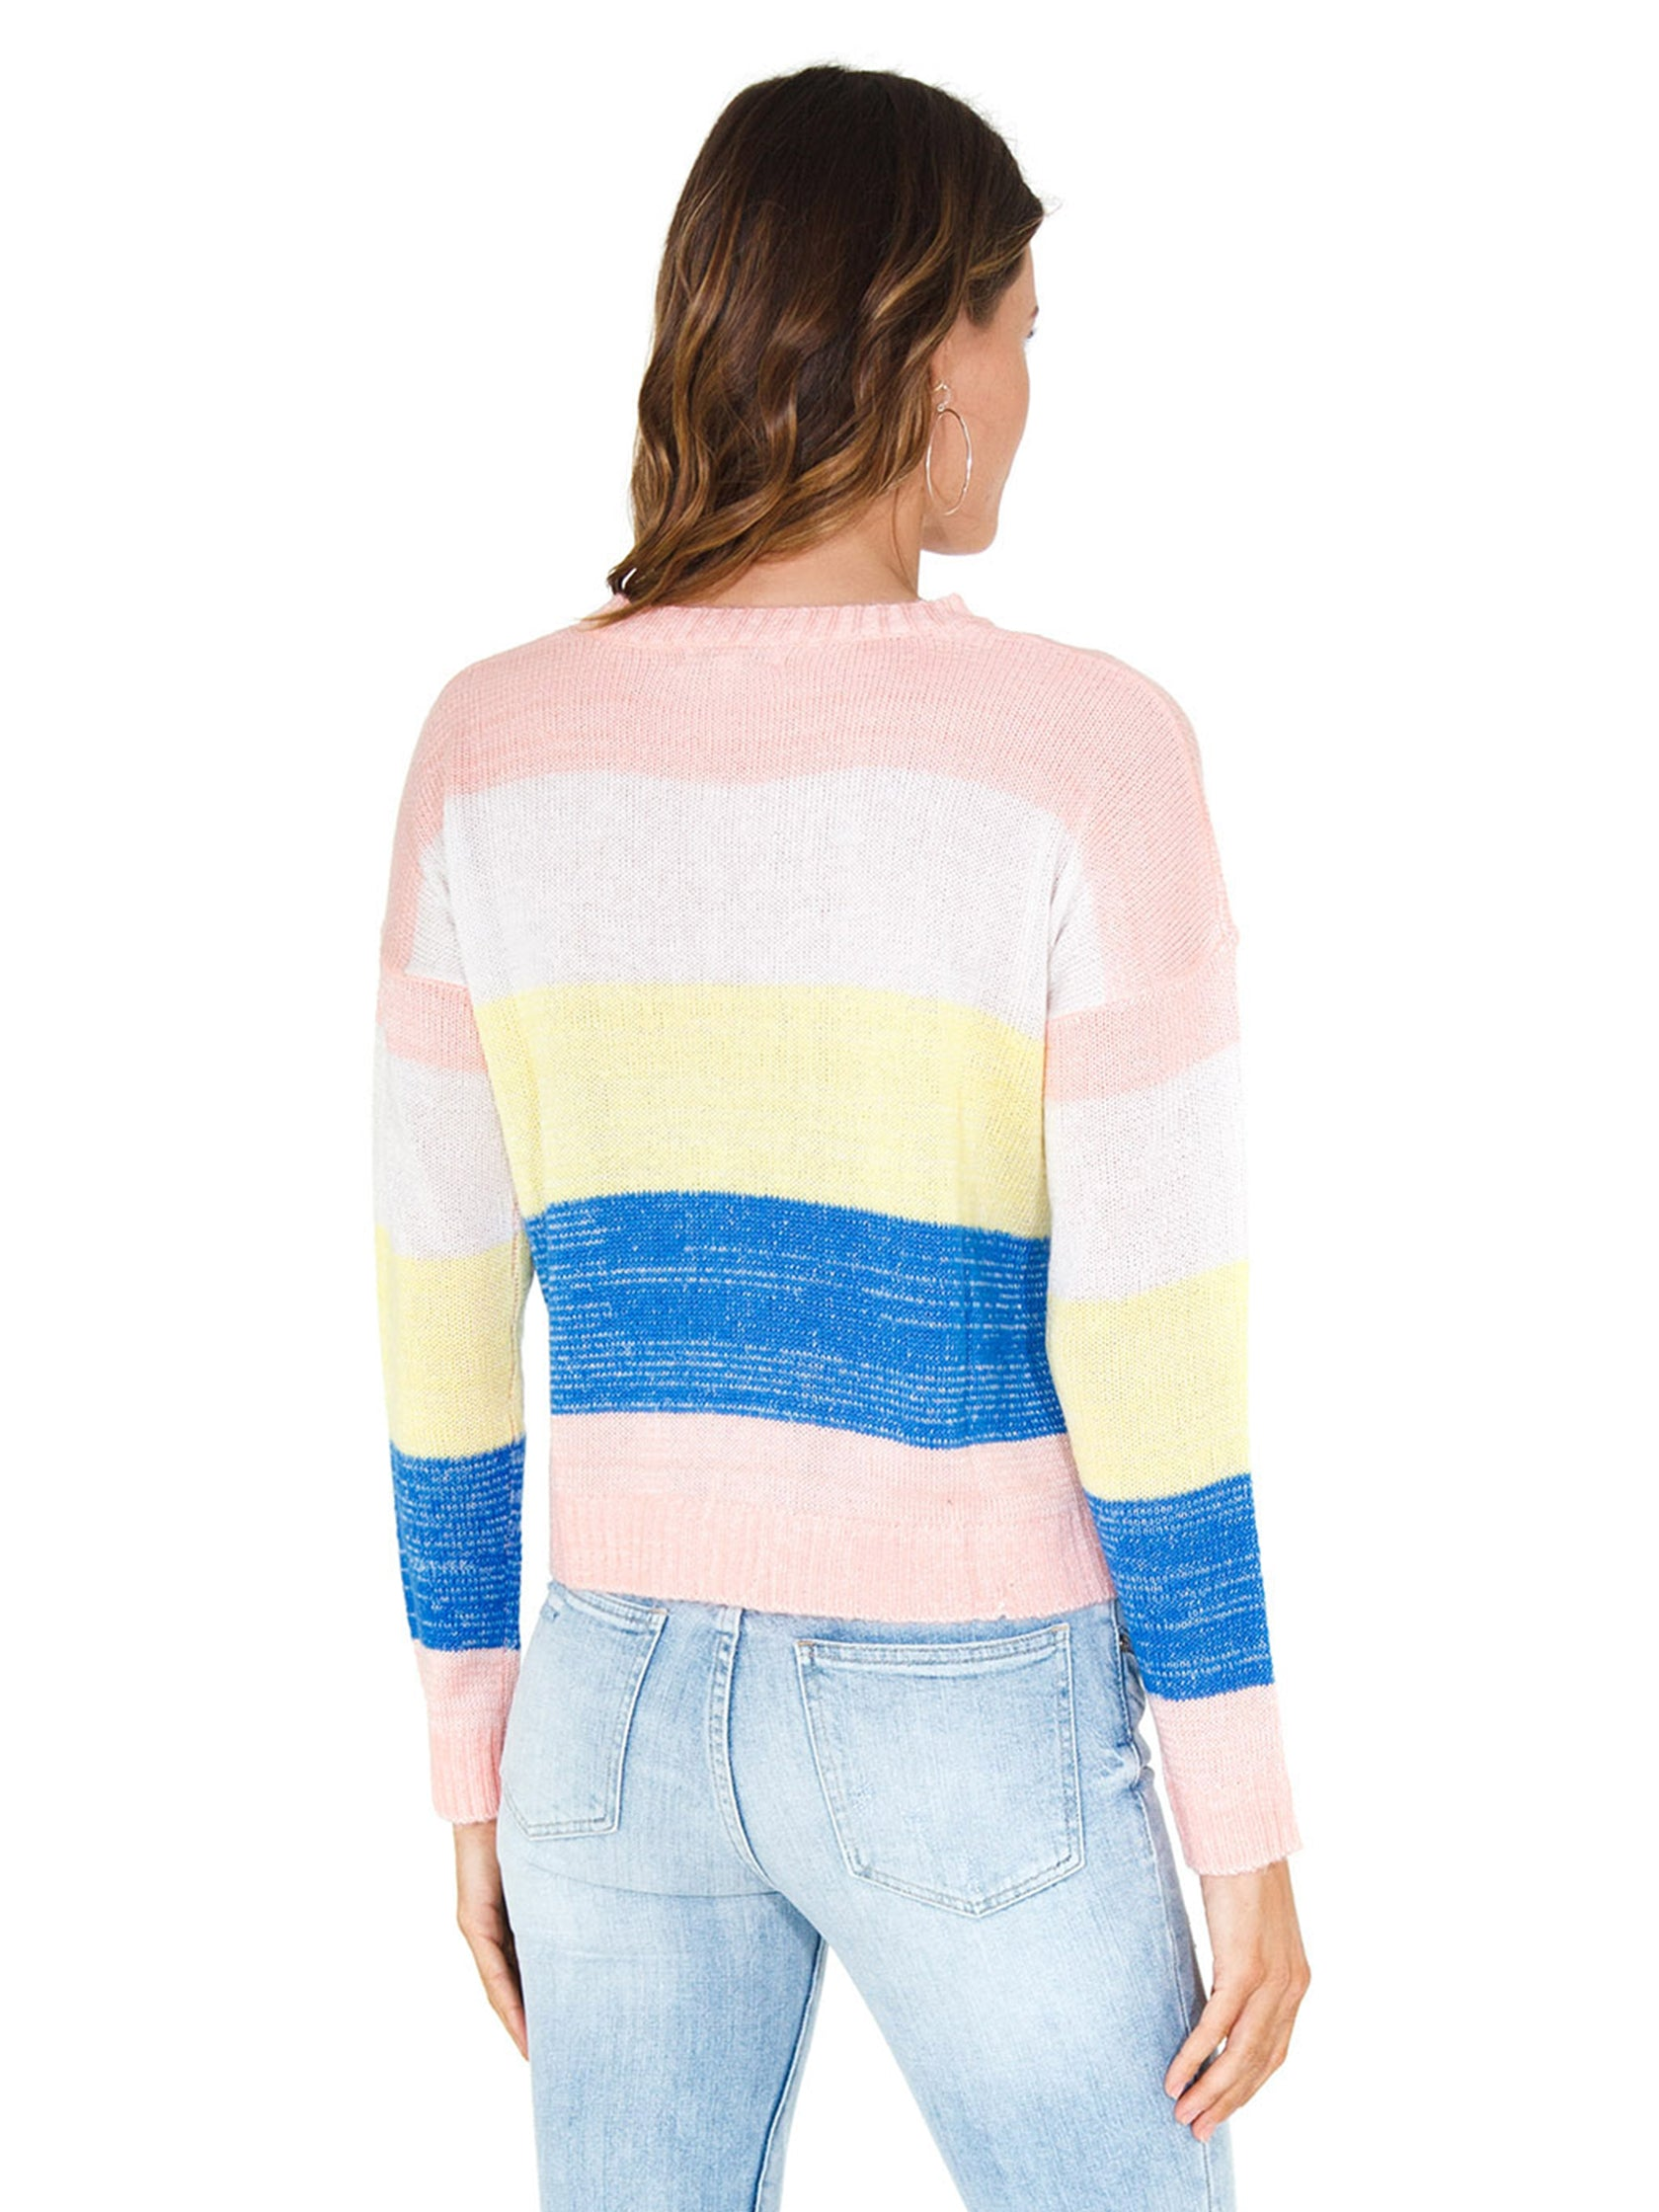 Women outfit in a sweater rental from FLETCH called Lemon Stripe Sweater